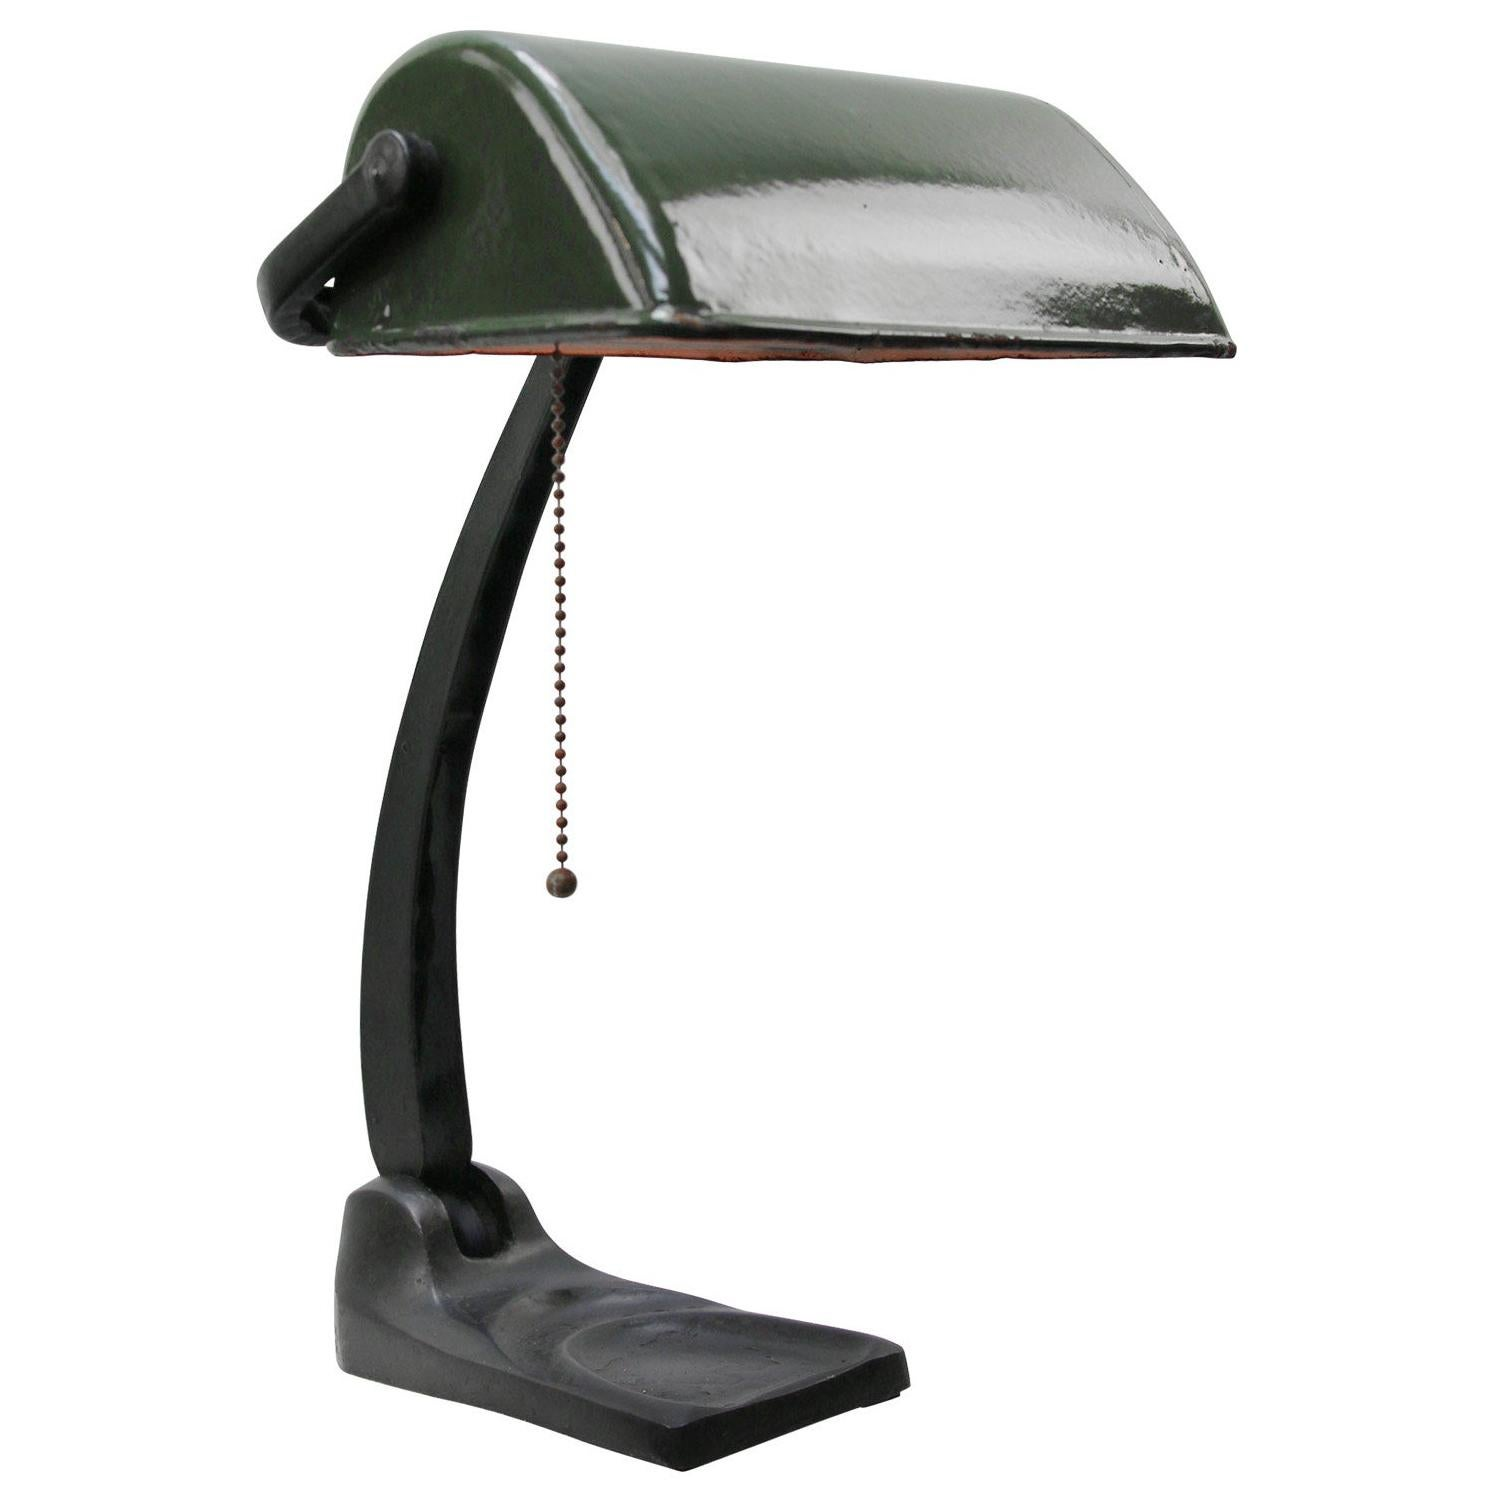 Green Enamel Vintage Bankers Work Light Table Desk Light